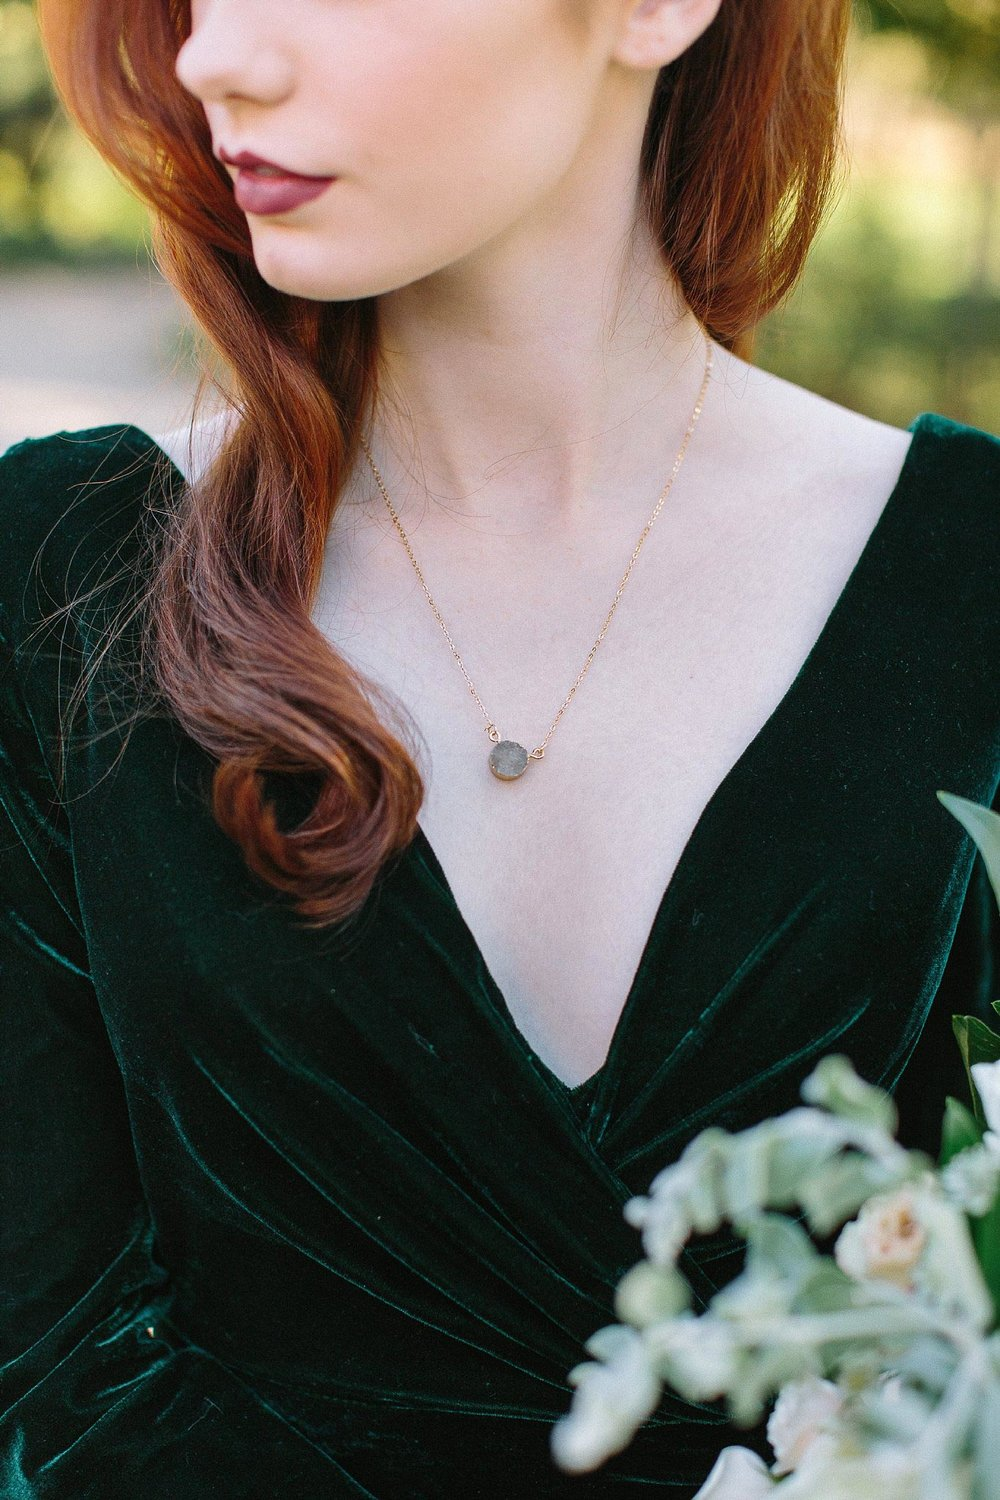 aristide mansfield wedding greenery dress with jewel necklace